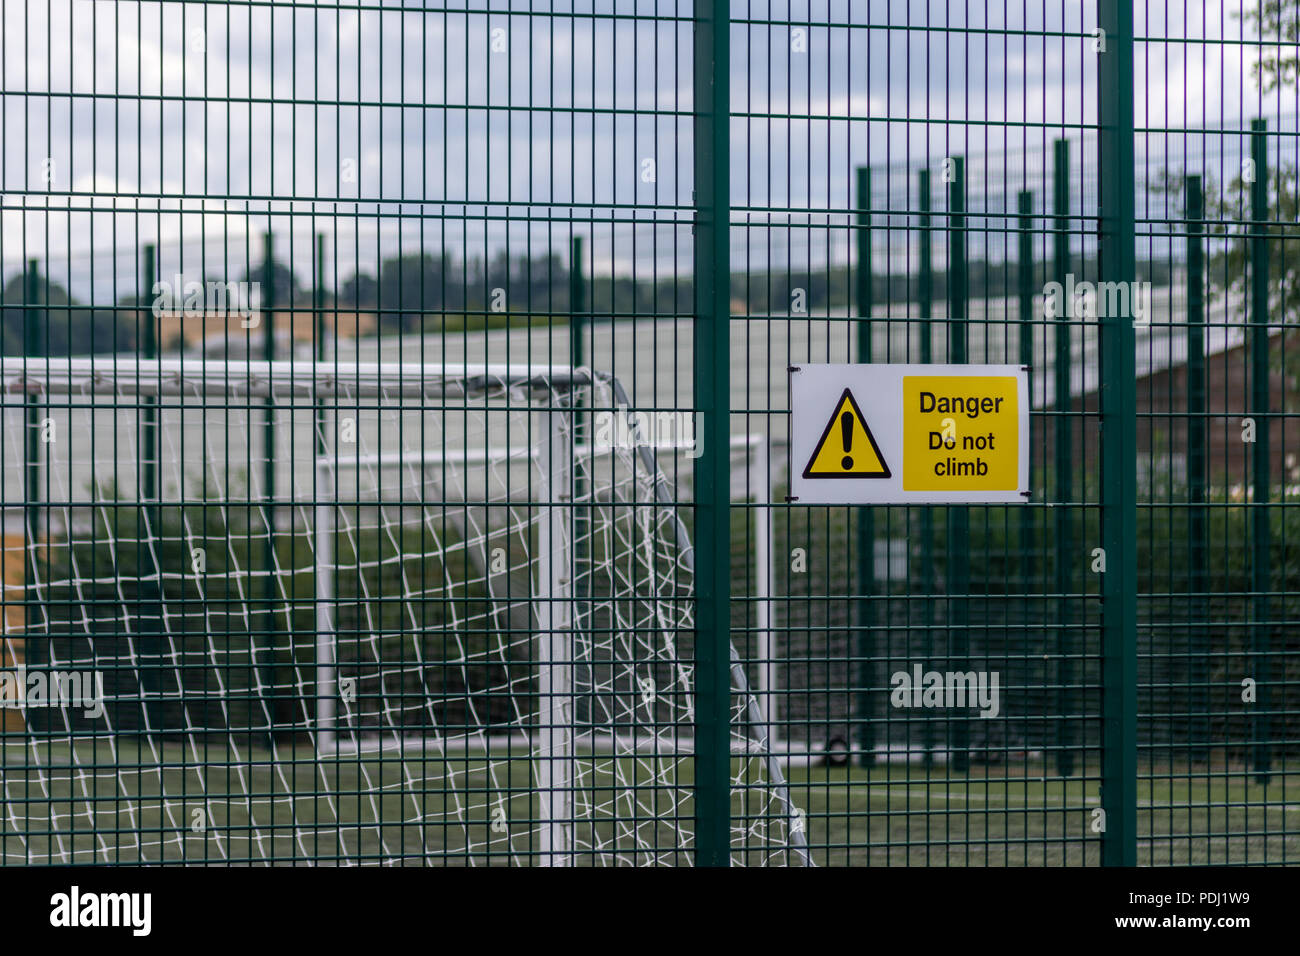 metal grid fence stock photos metal grid fence stock images alamy